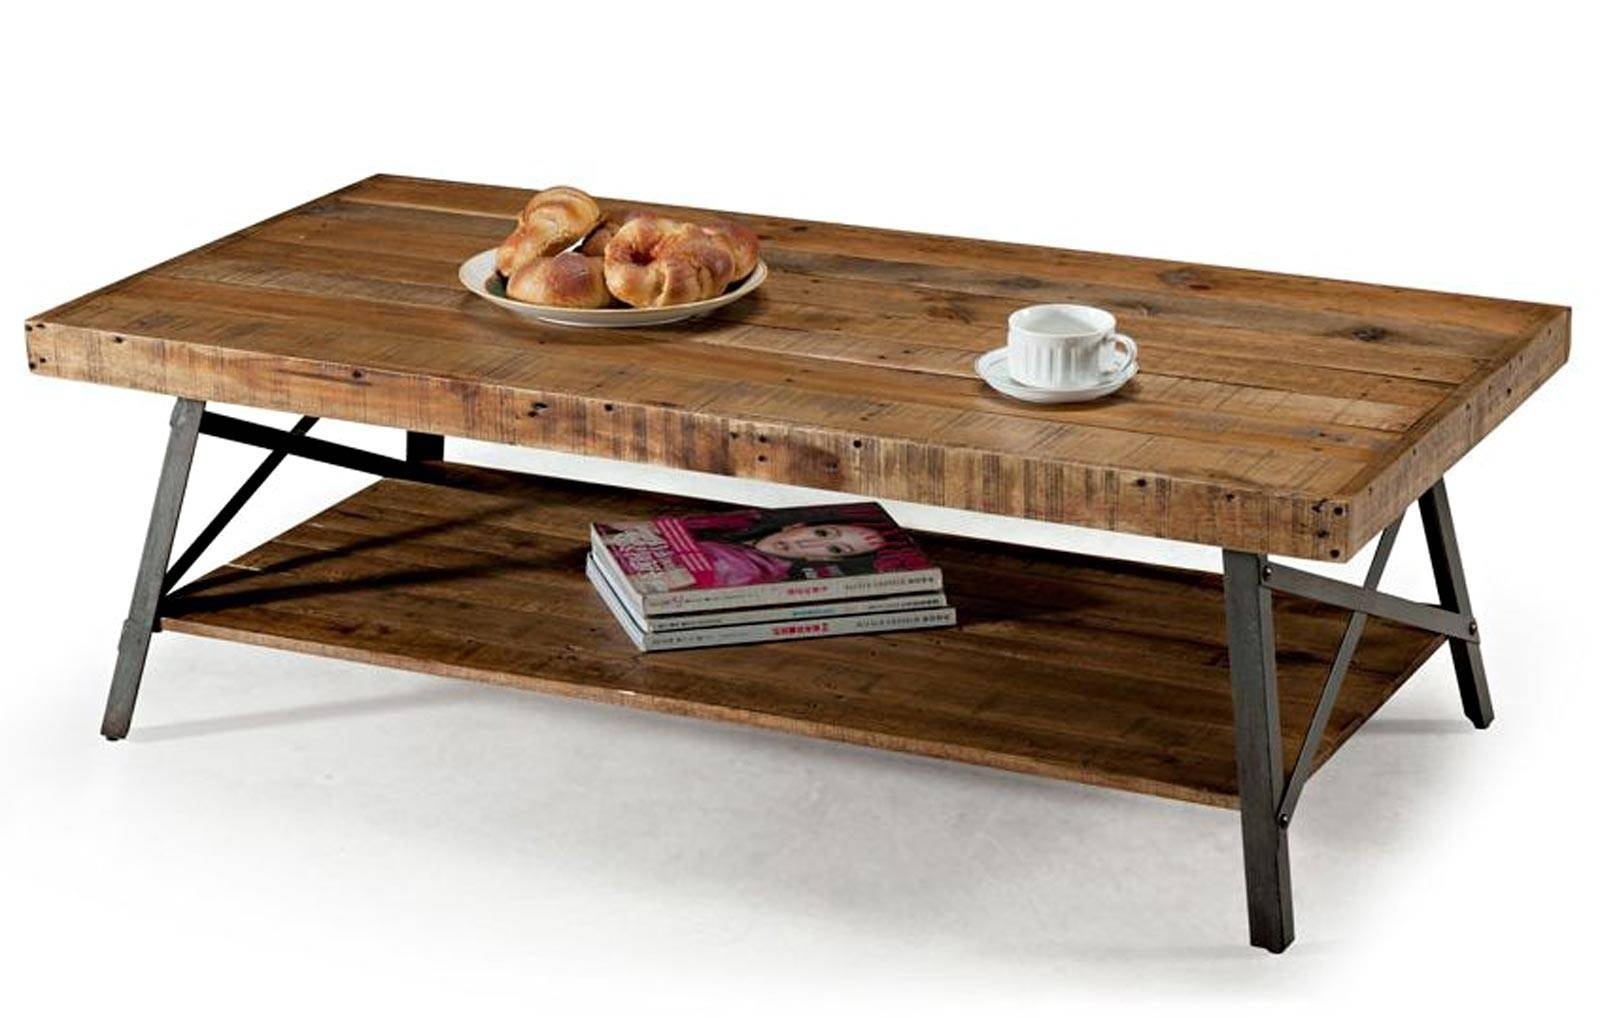 Rustic Coffee Table On Wheels U2013 Rustic Wooden Coffee Table With Inside Wheels  Coffee Tables (